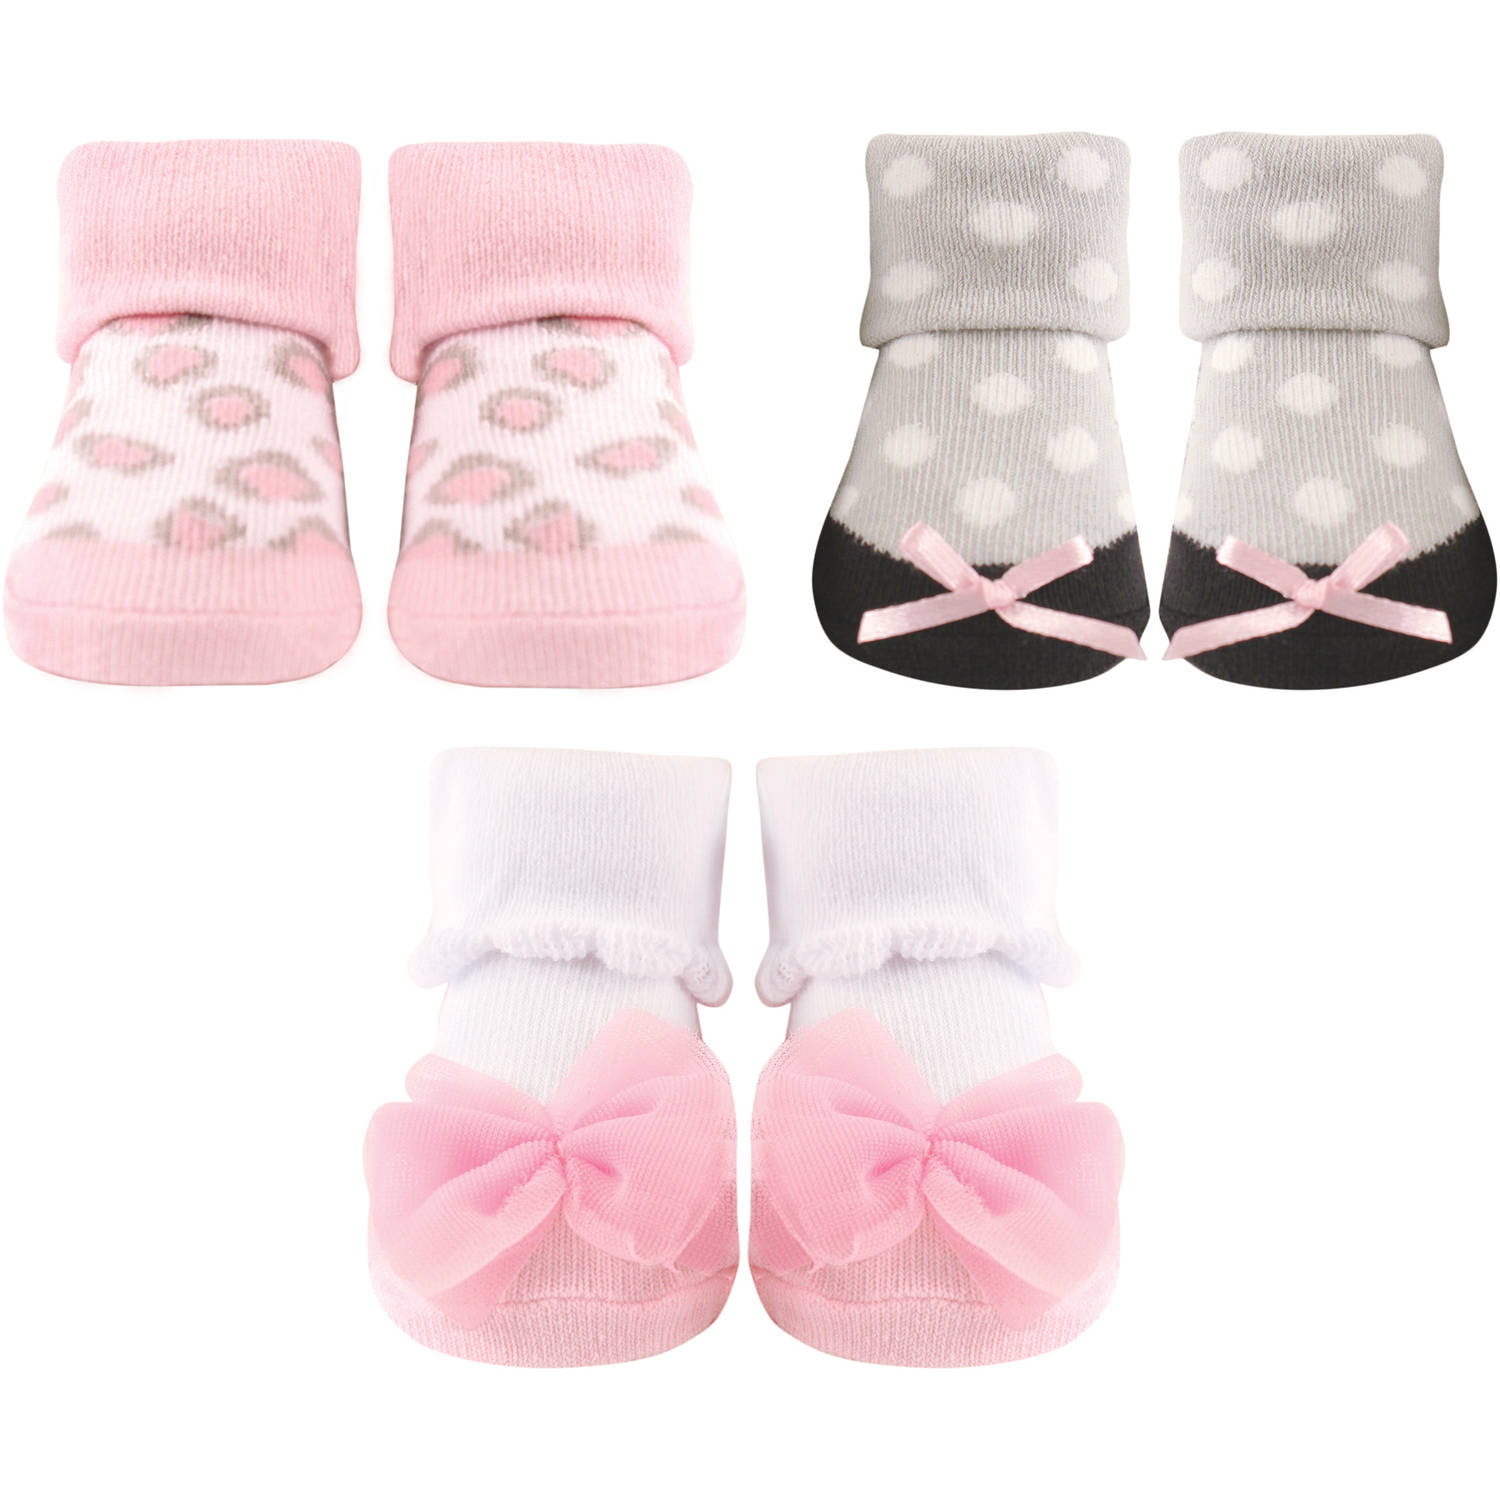 Luvable Friends Newborn Baby Girl Decorated Socks Giftset 3-Piece